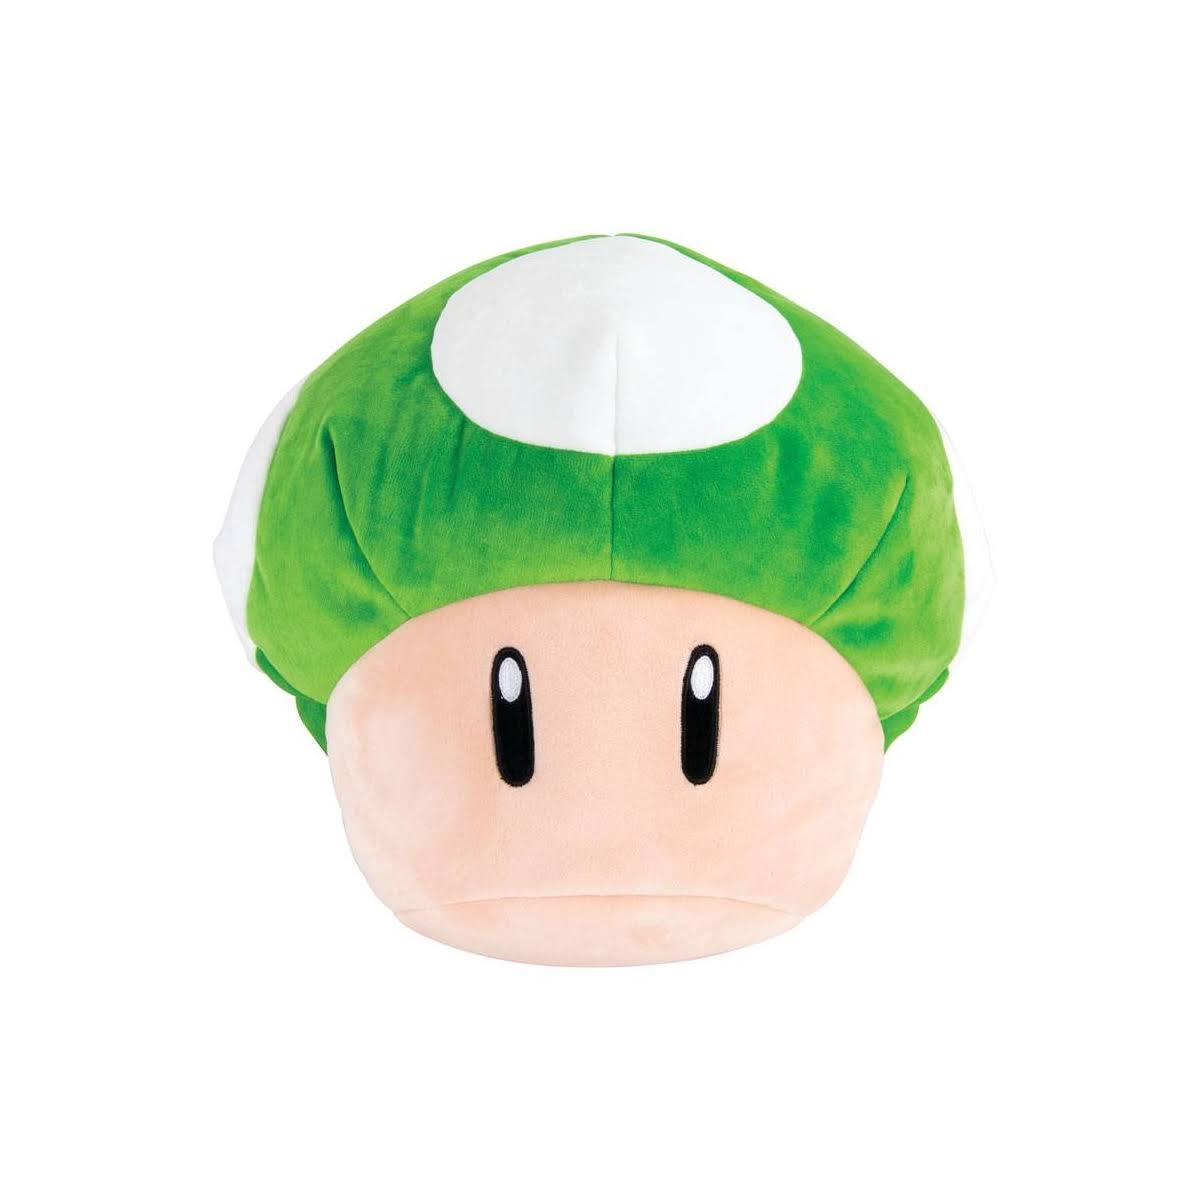 Club Mocchi Mocchi - Mario Kart 1-Up Mushroom Plush Stuffed Toy